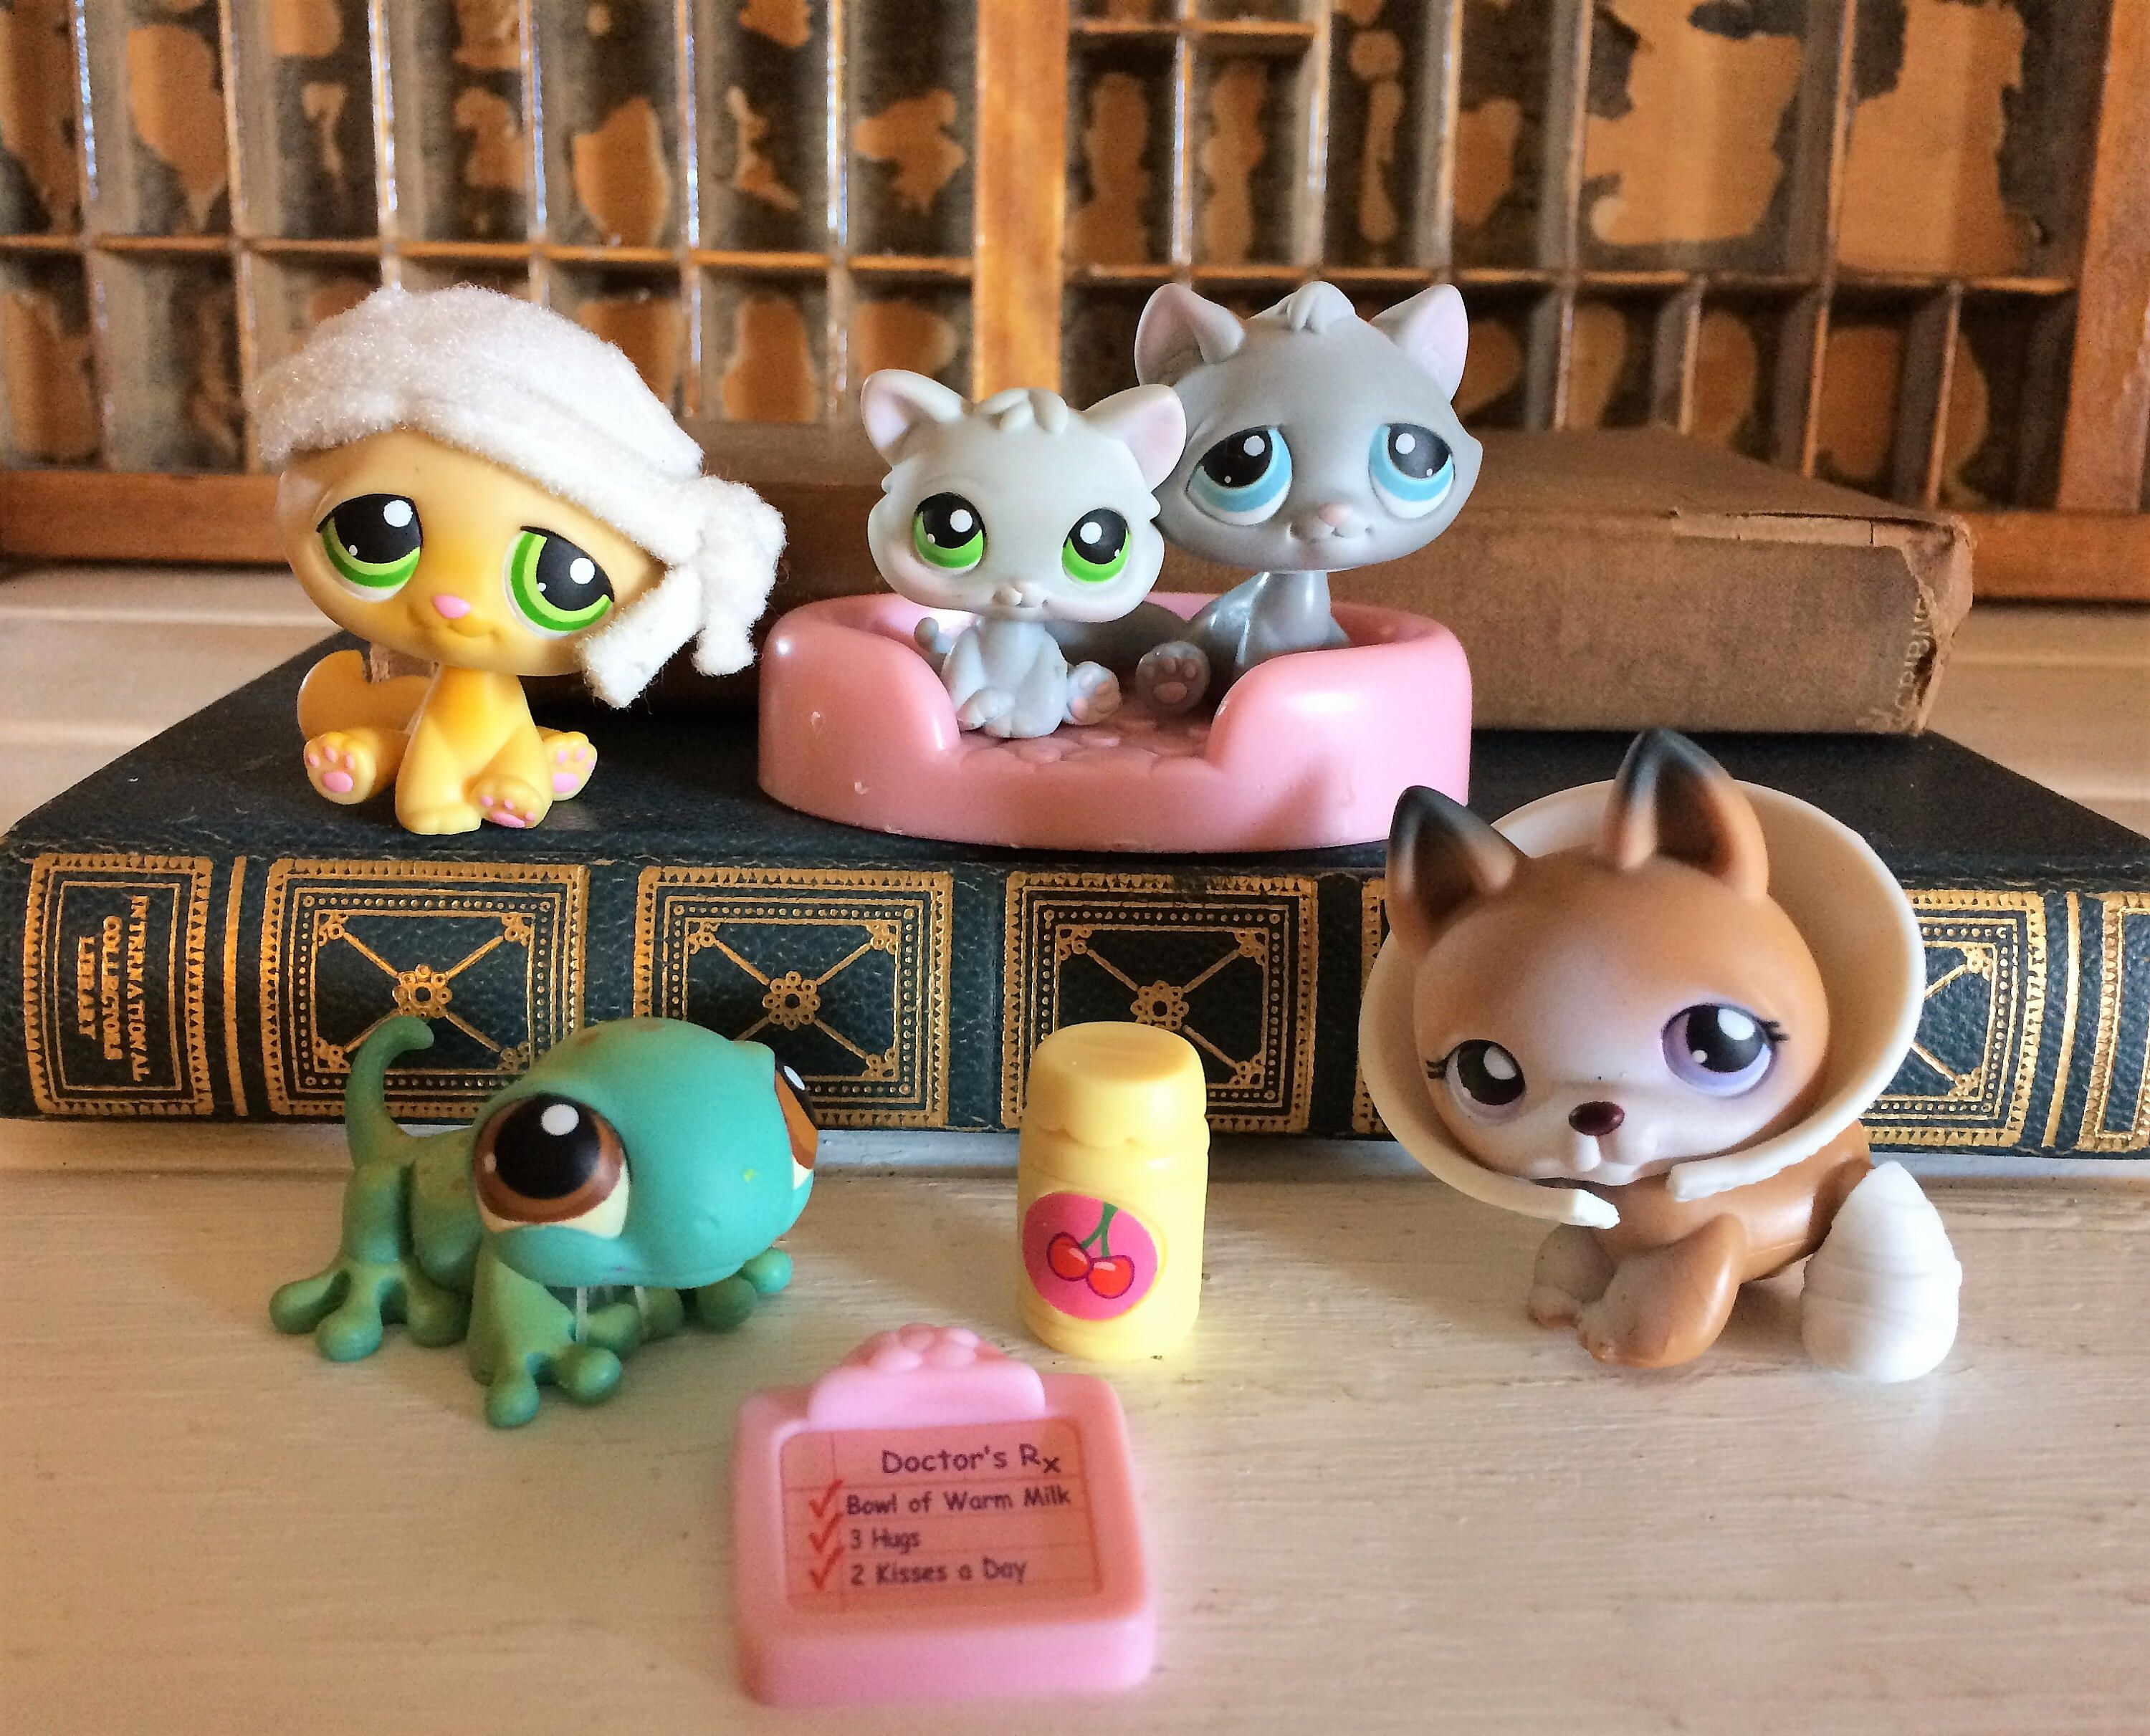 Littlest Pet Shop Lps Lps On The Go Littlest Pet Hospital Lps